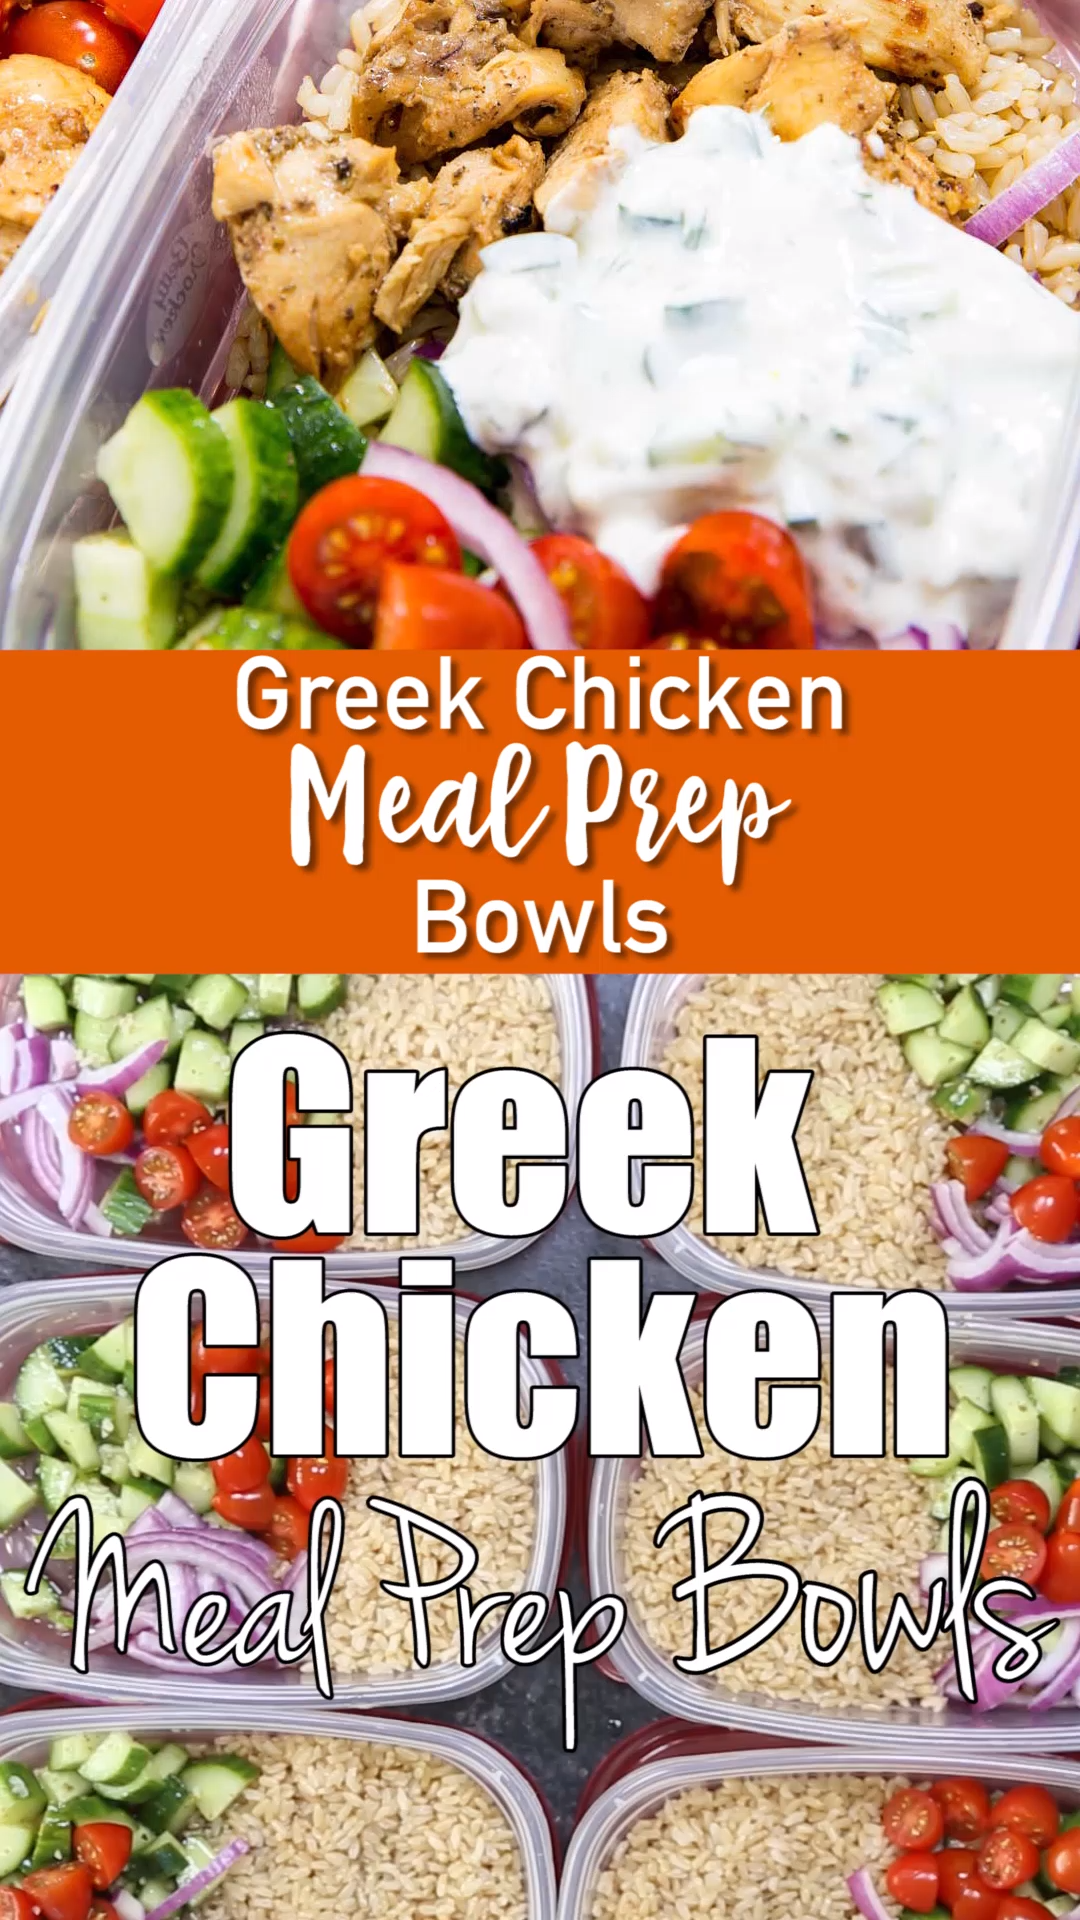 Photo of Greek Chicken Meal Prep Bowls